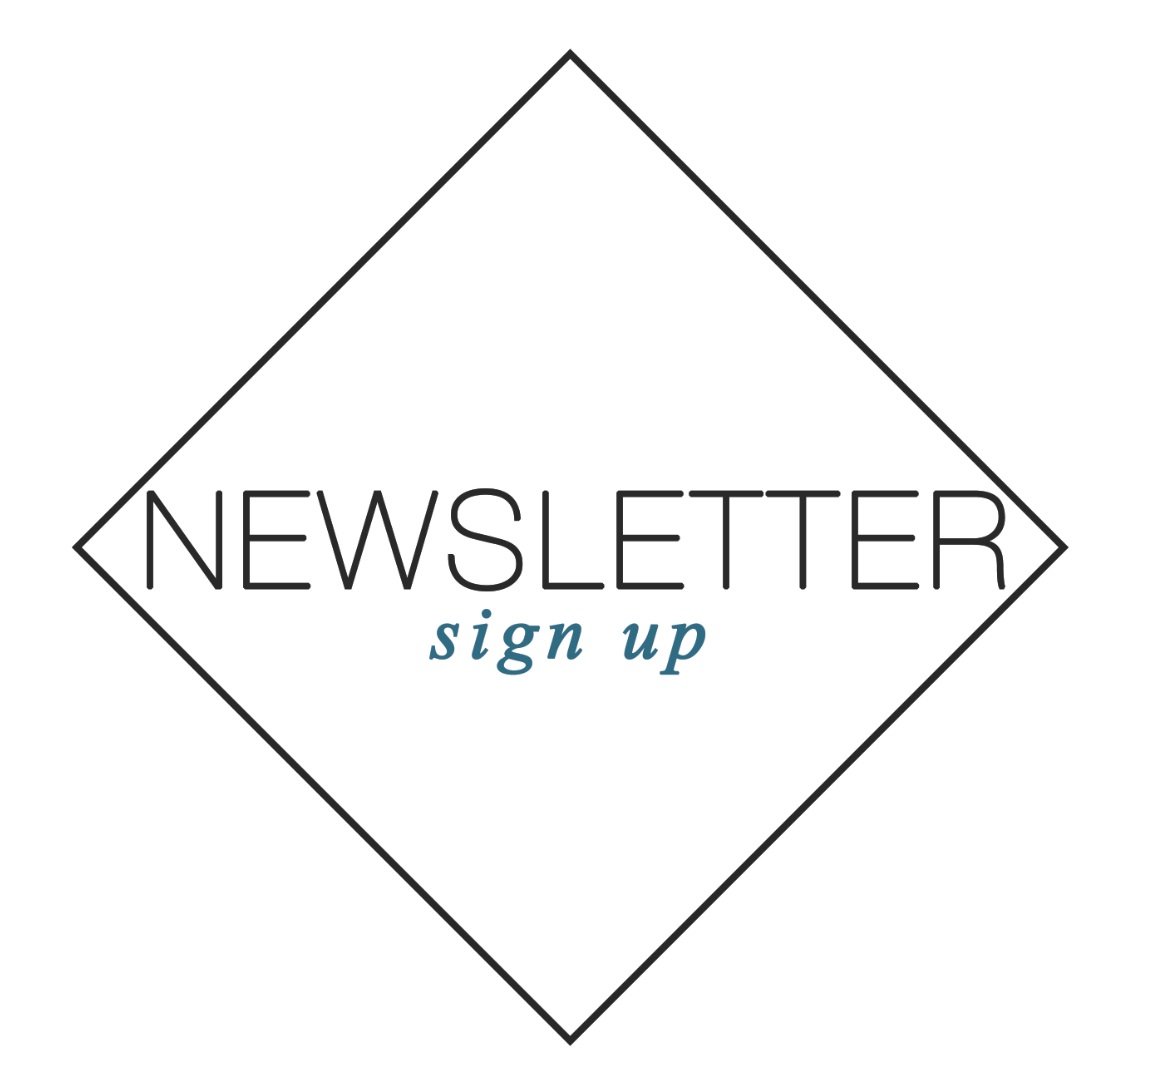 RETAIL ASSEMBLY newsletter signup.jpg